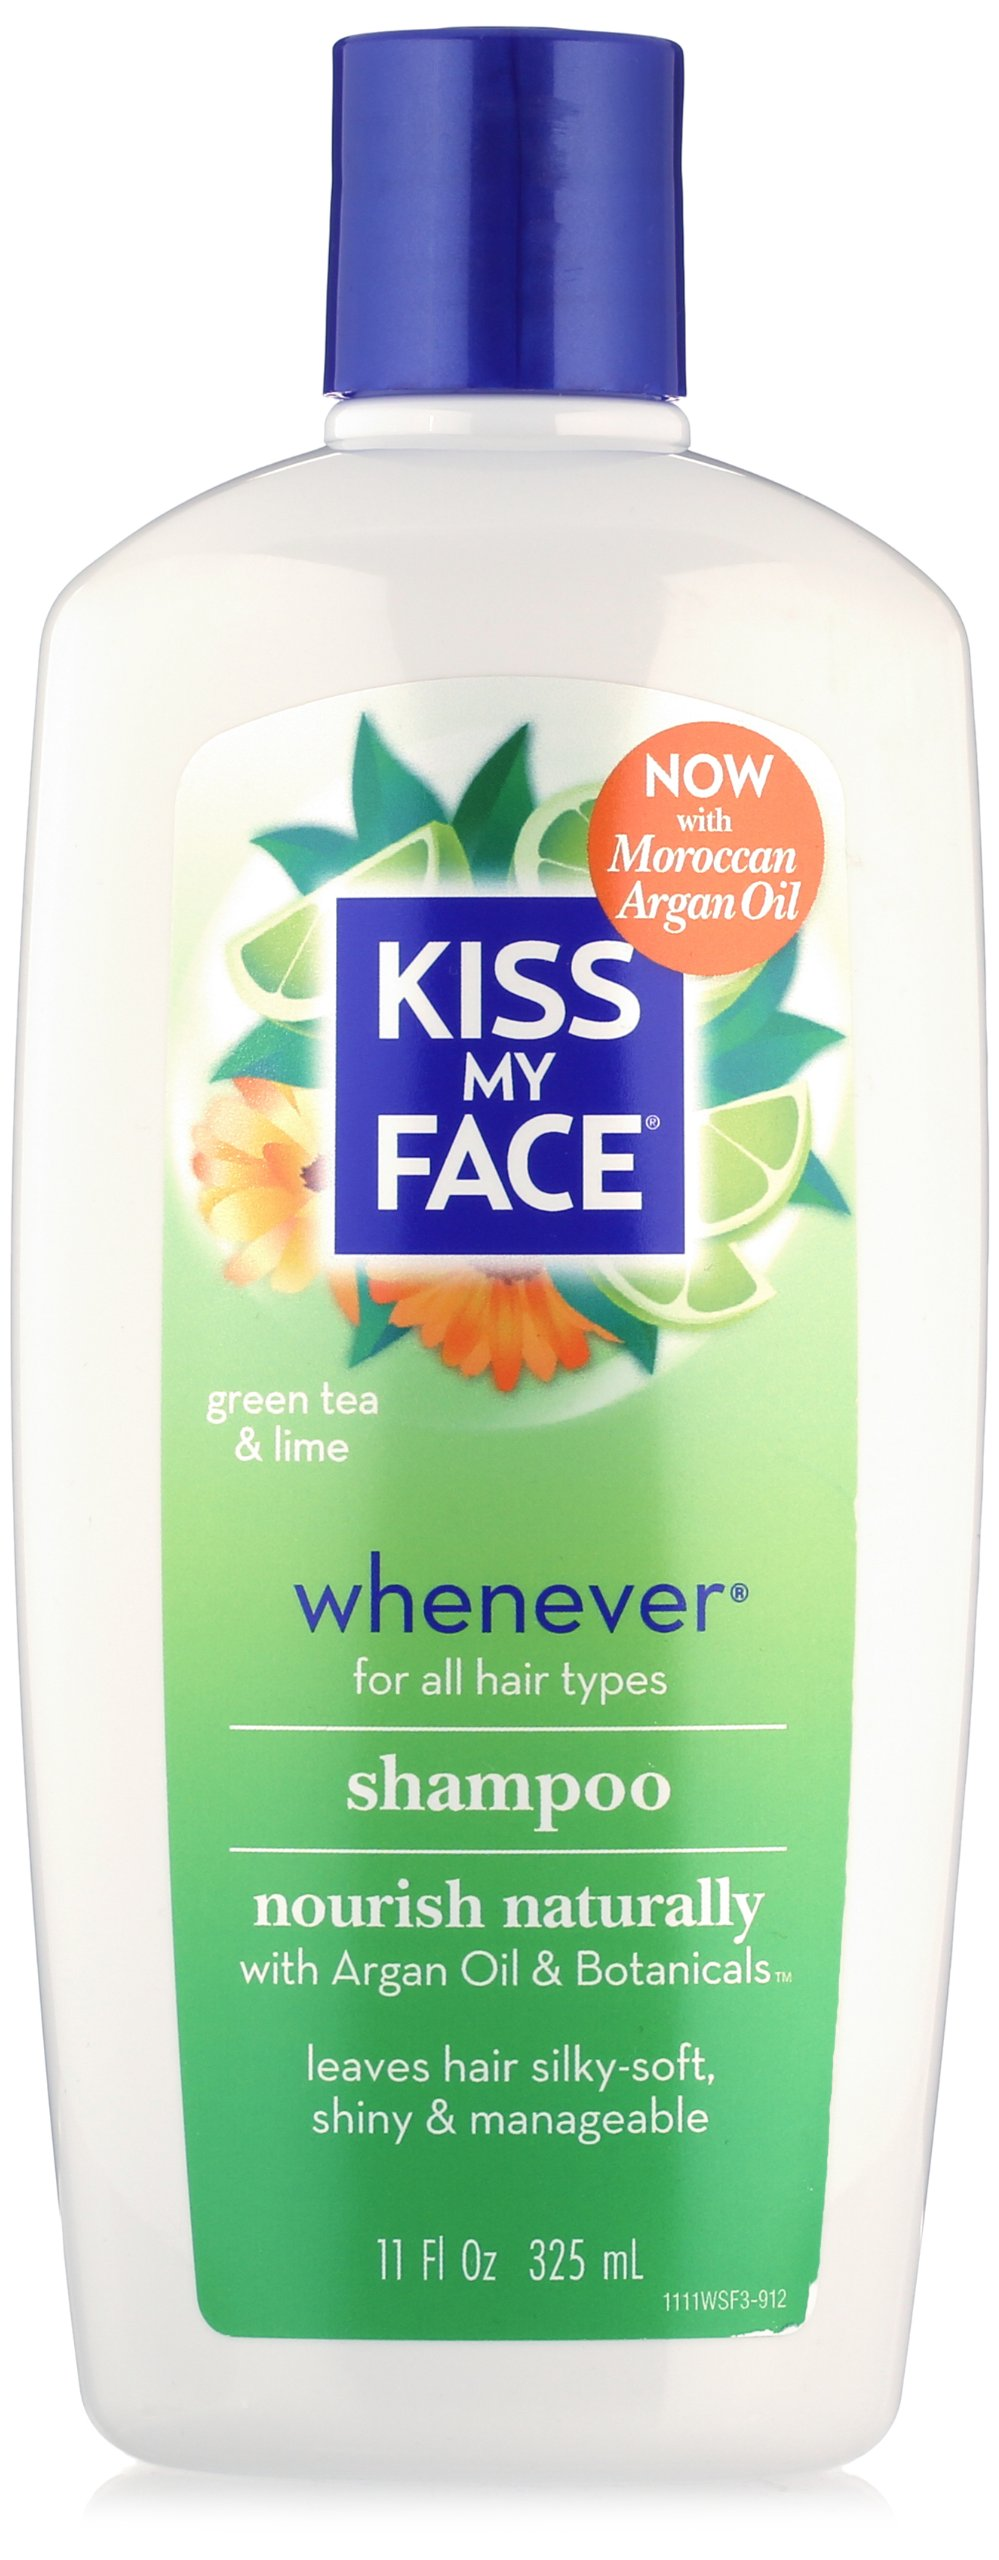 Kiss My Face Whenever Shampoo, Shampoo with Green Tea & Lime, 11 Ounce (Pack of 3) by Kiss My Face (Image #2)